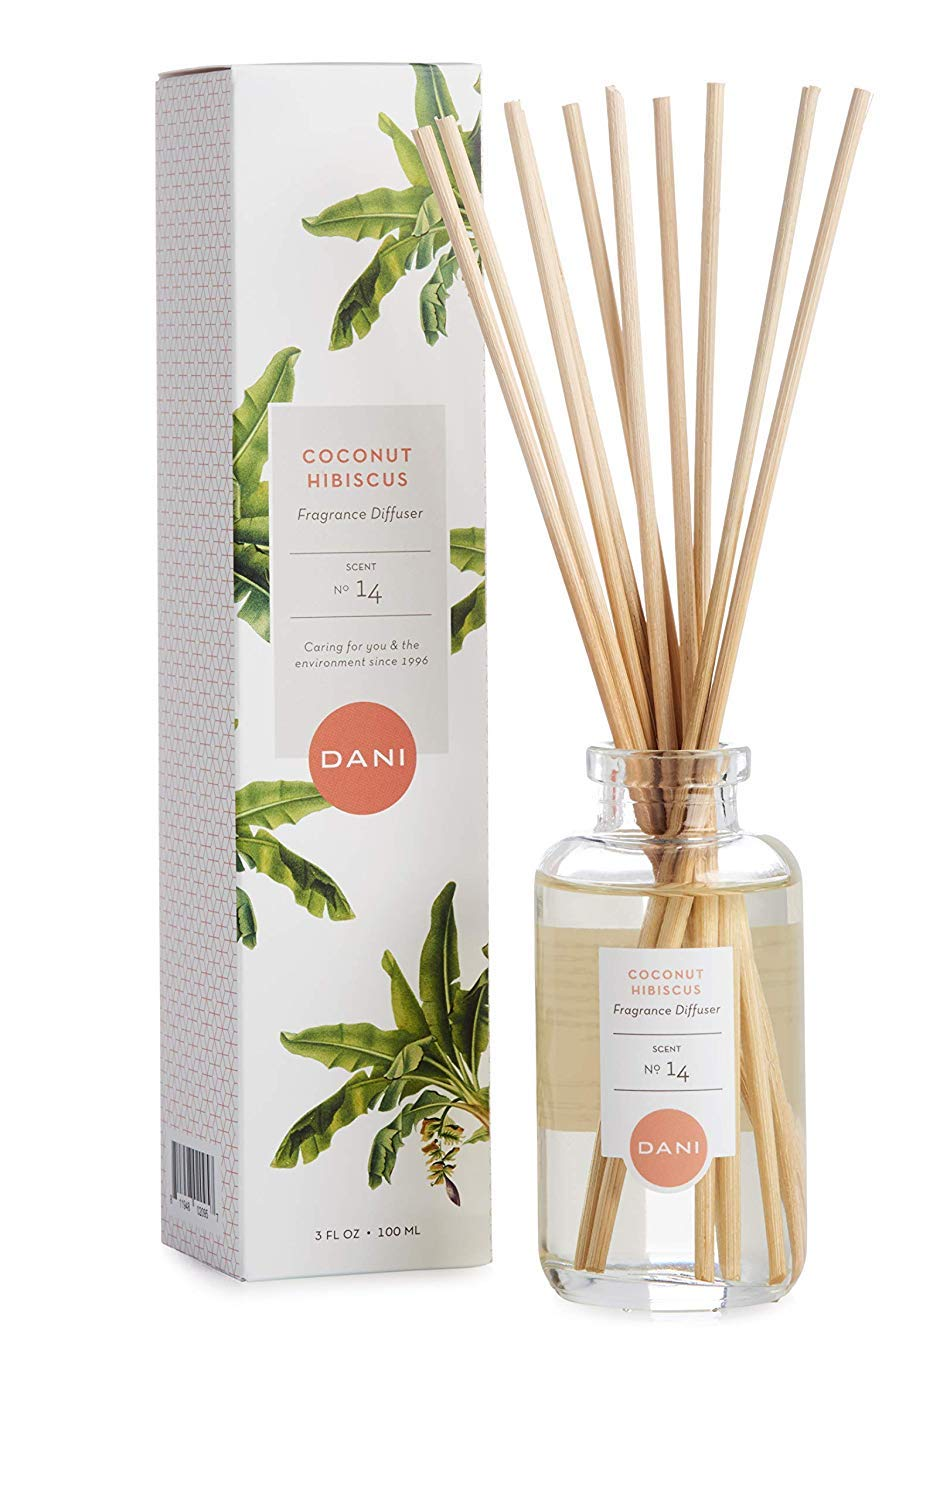 Natural Reed Diffuser Set by DANI Naturals - Tropical Coconut Hibiscus Scent - Aromatherapy Essential Oils - Alcohol Free - 10 Diffuser Sticks - 3.5 Ounce Glass Bottle by DANI